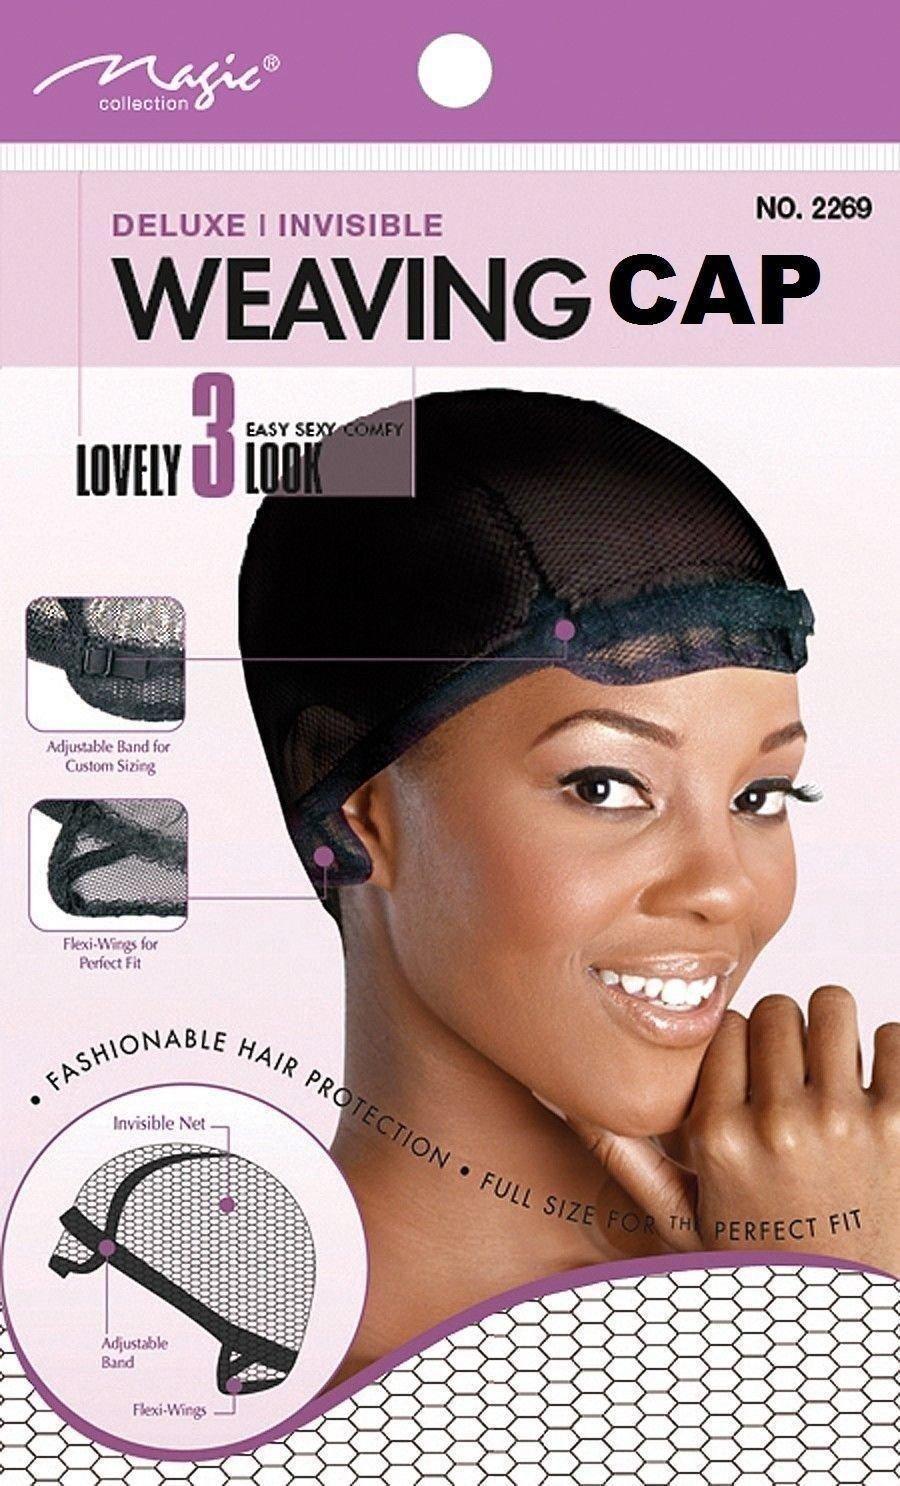 Magic Weaving Cap Deluxe Extra Large Net Adjustable Band Invisible